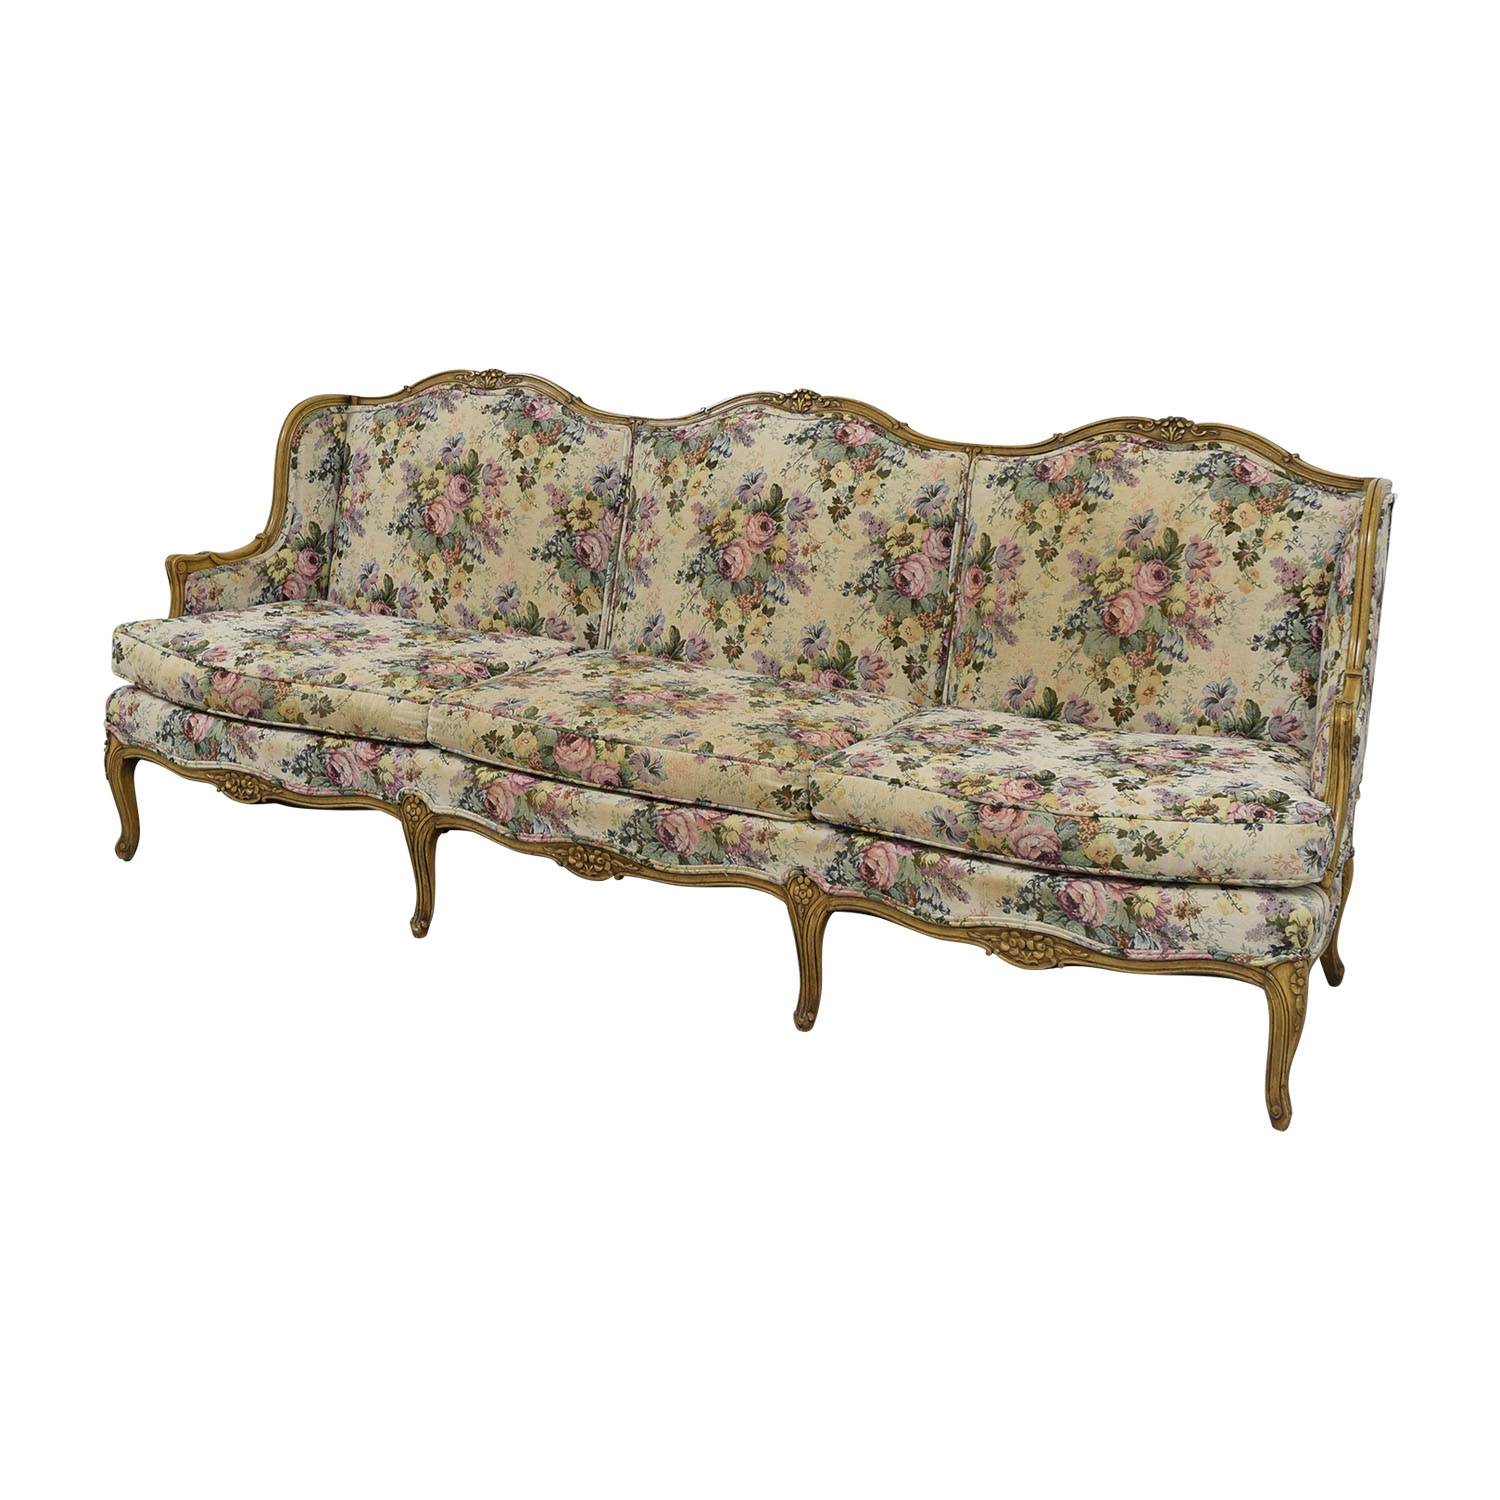 87% Off – Vintage Floral Sofa / Sofas Inside Floral Sofas And Chairs (View 5 of 15)